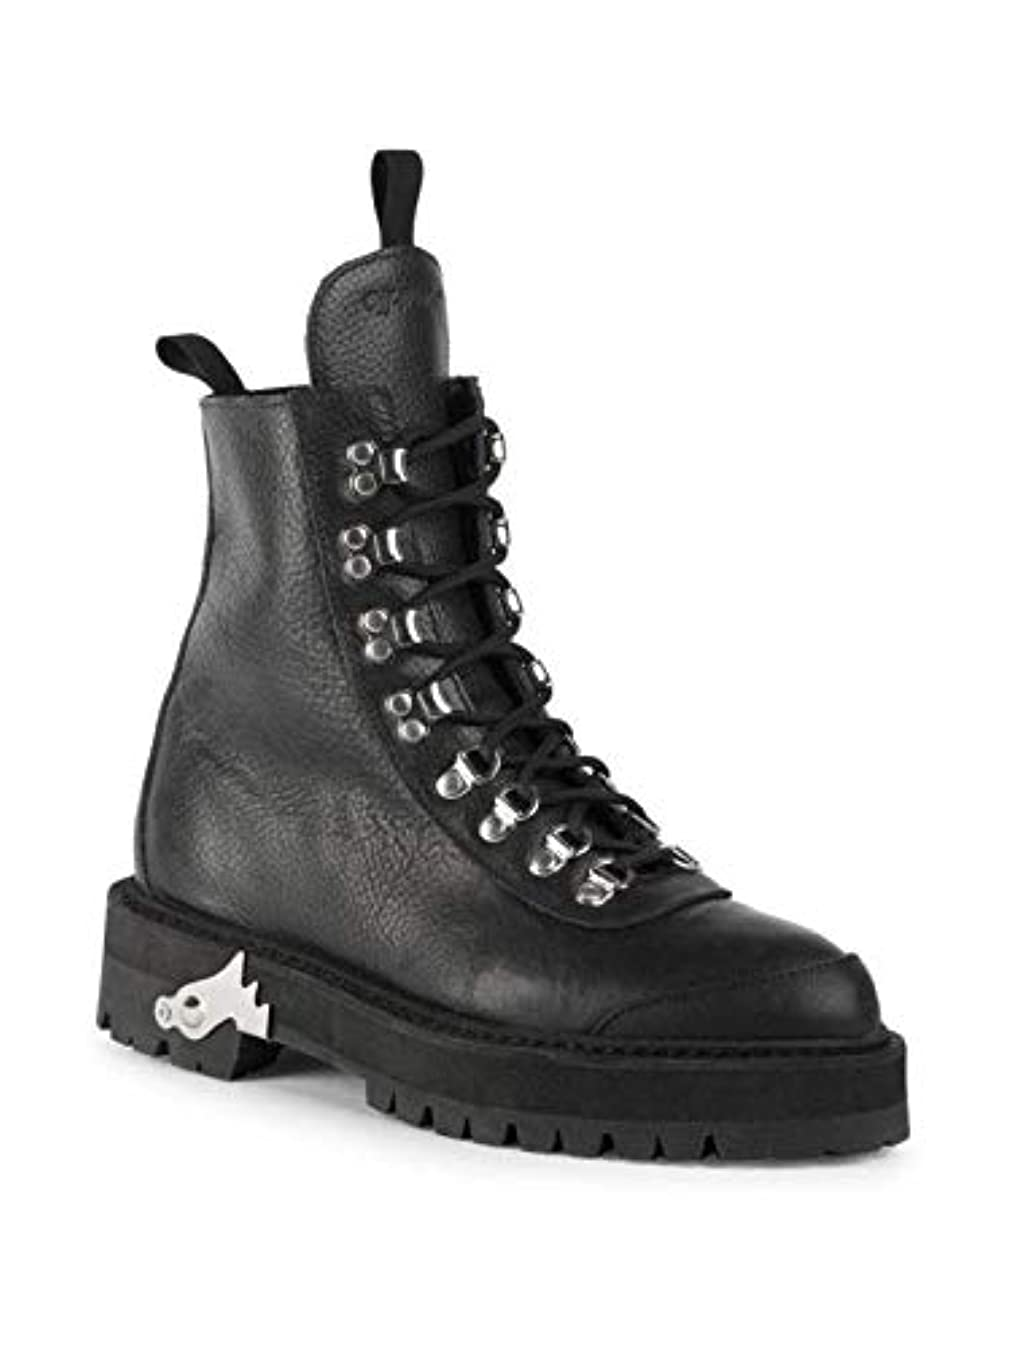 Off-White Leather Hiking Boots Size 41